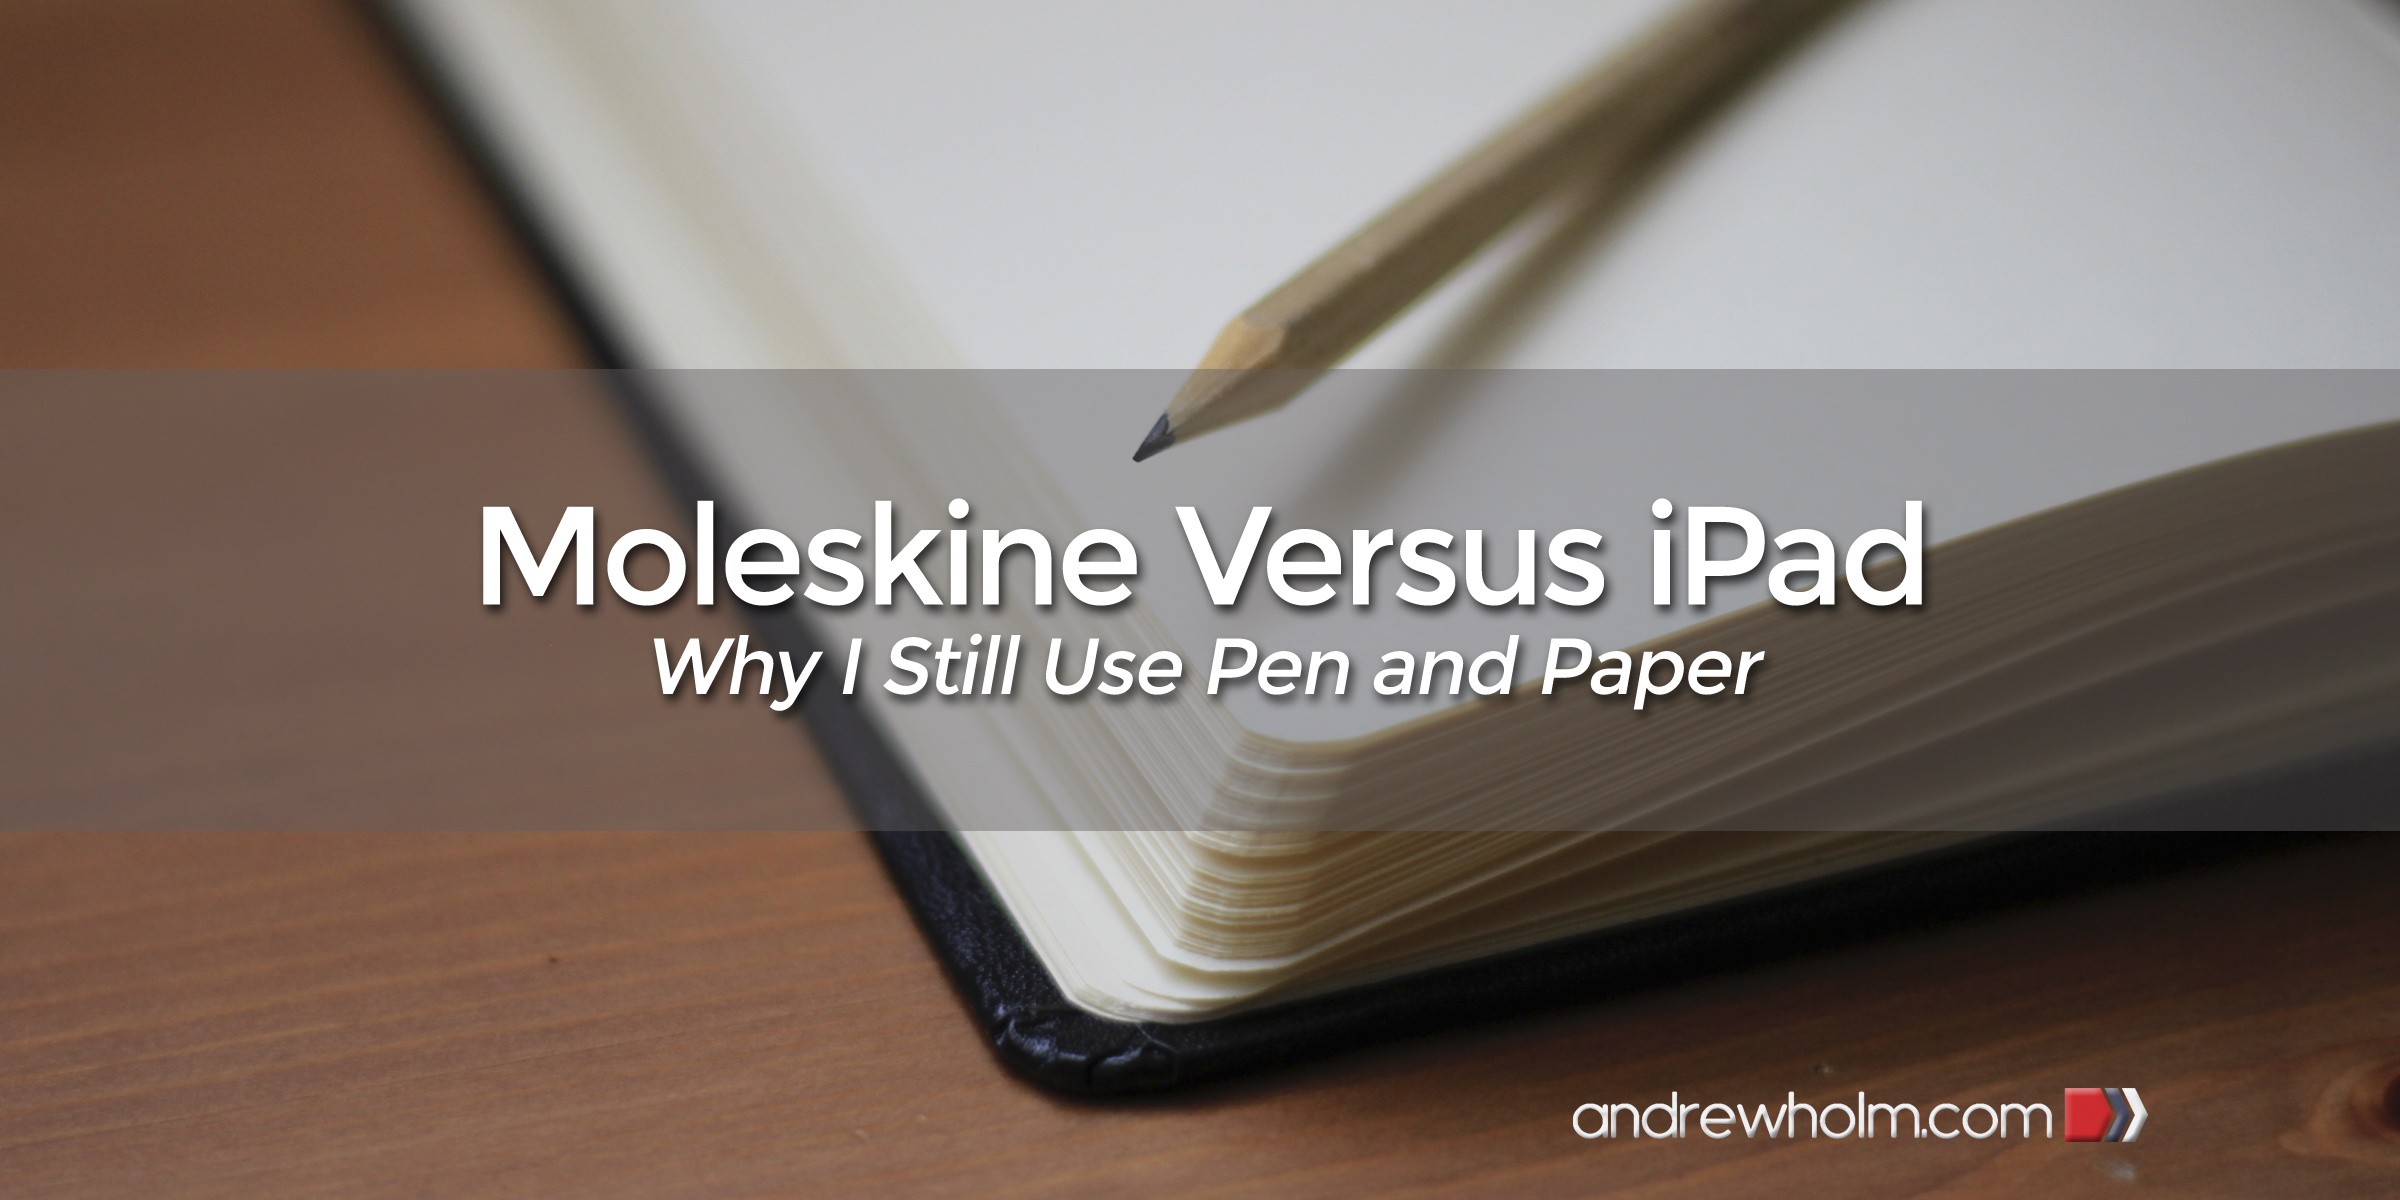 Moleskine Versus iPad Why I still use pen and paper